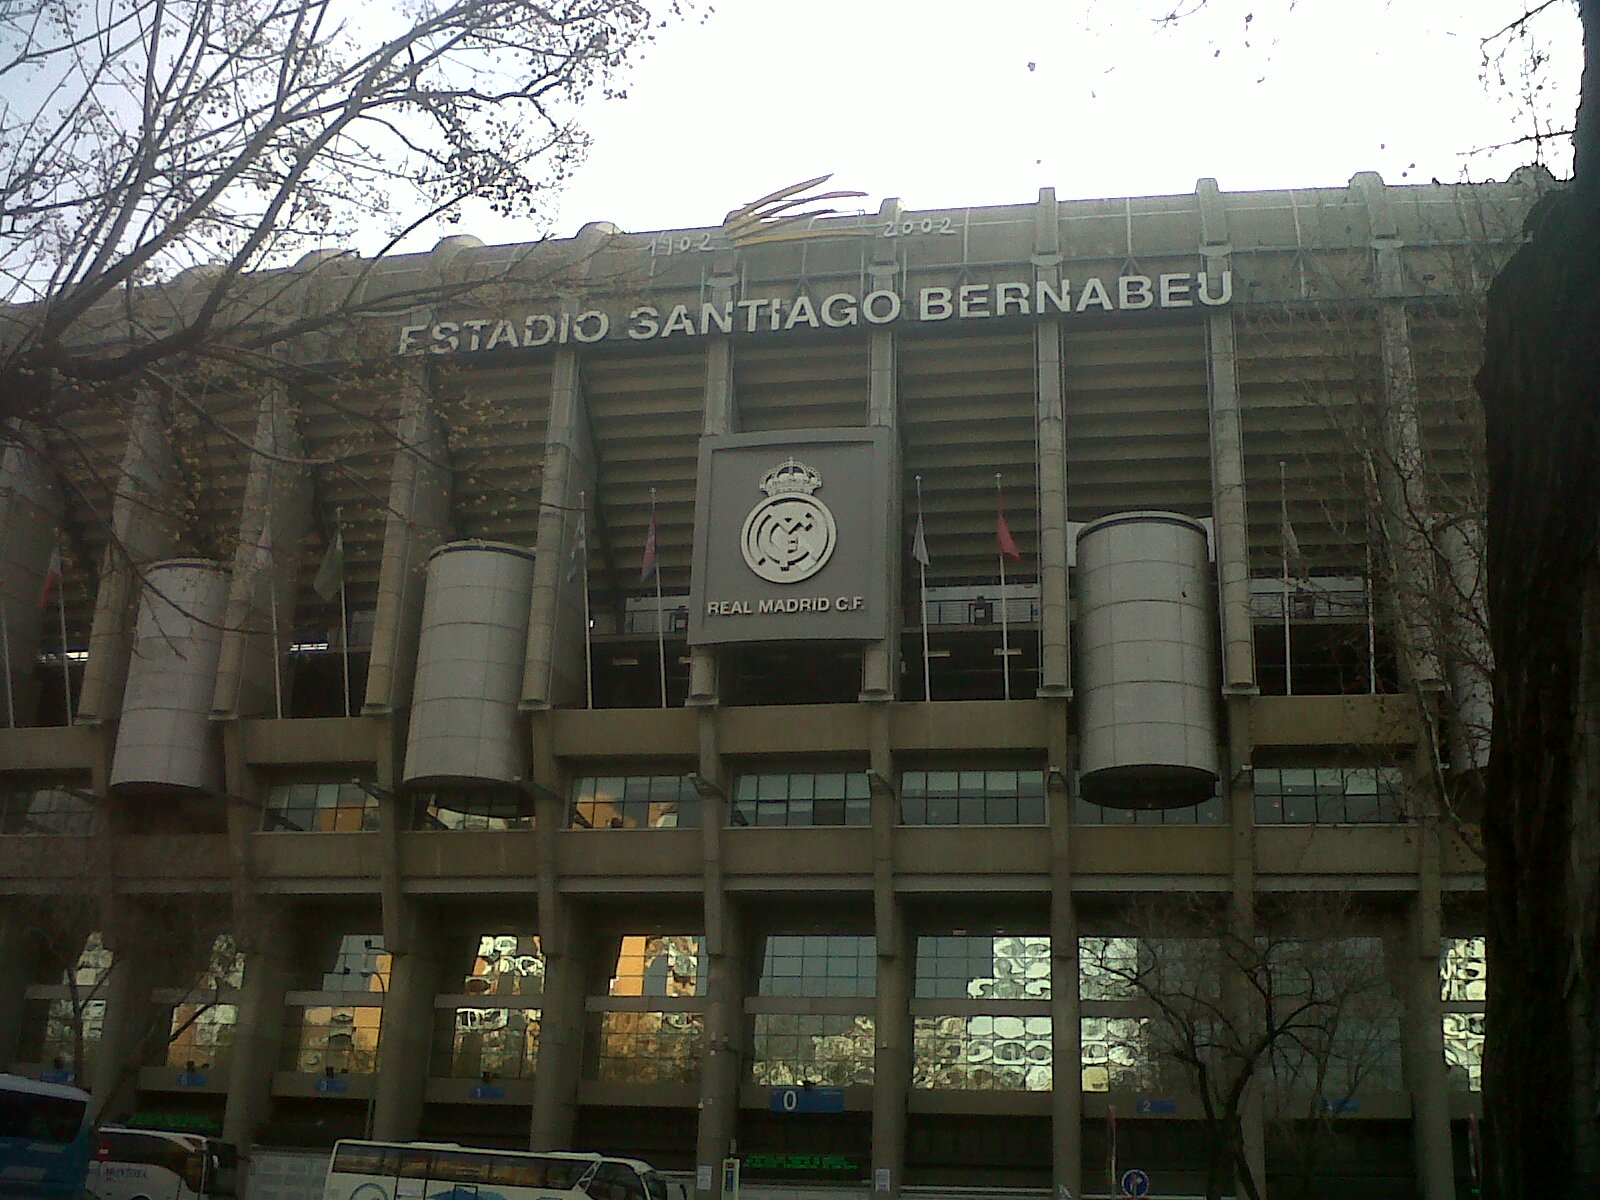 mad real madrid estadio santiago bernabeu emblem feb13